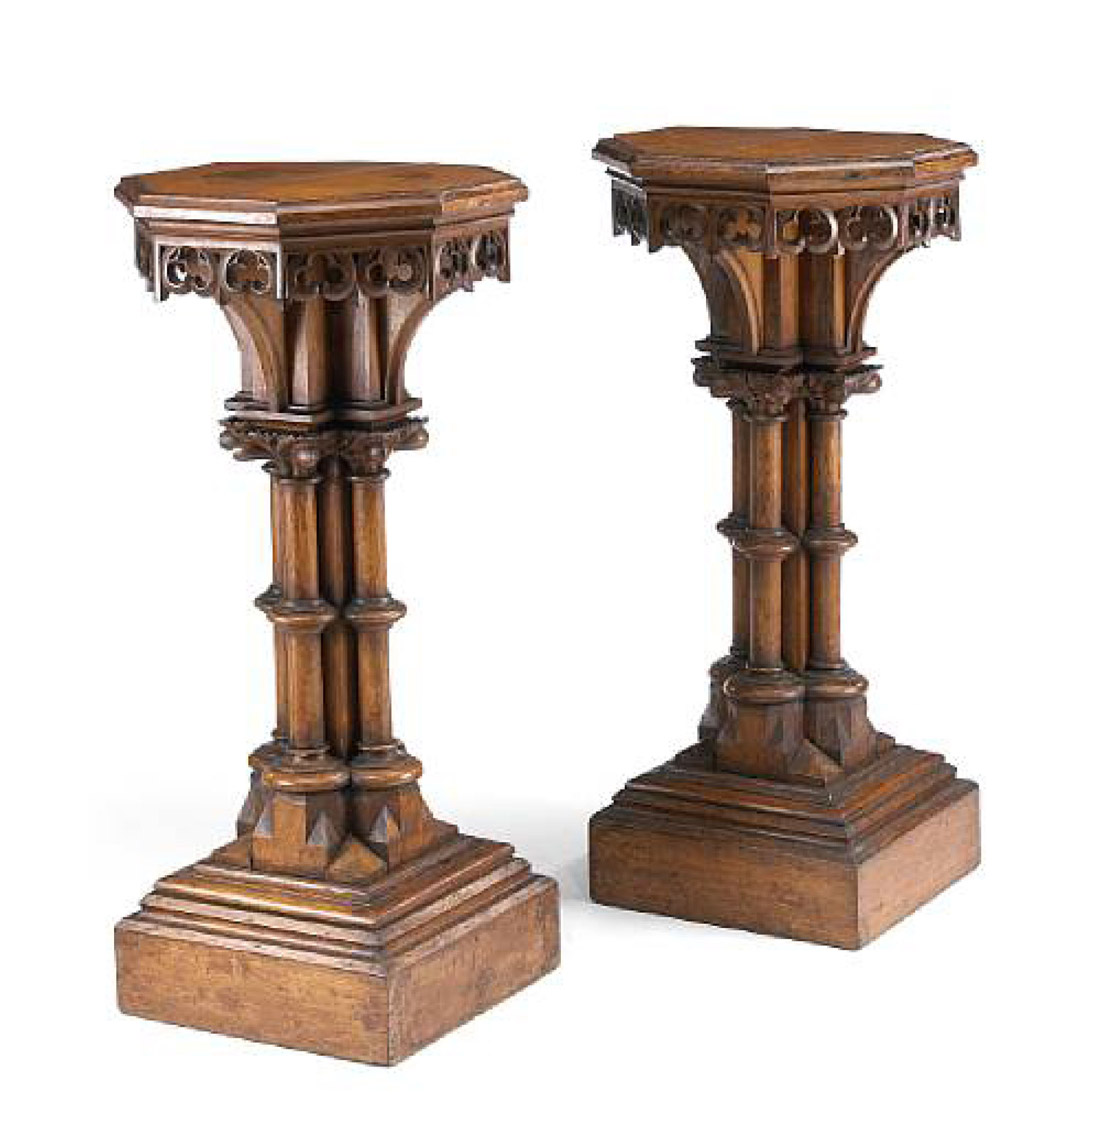 Ancient gothic furniture - Puritan Values Specialising In The Arts And Crafts